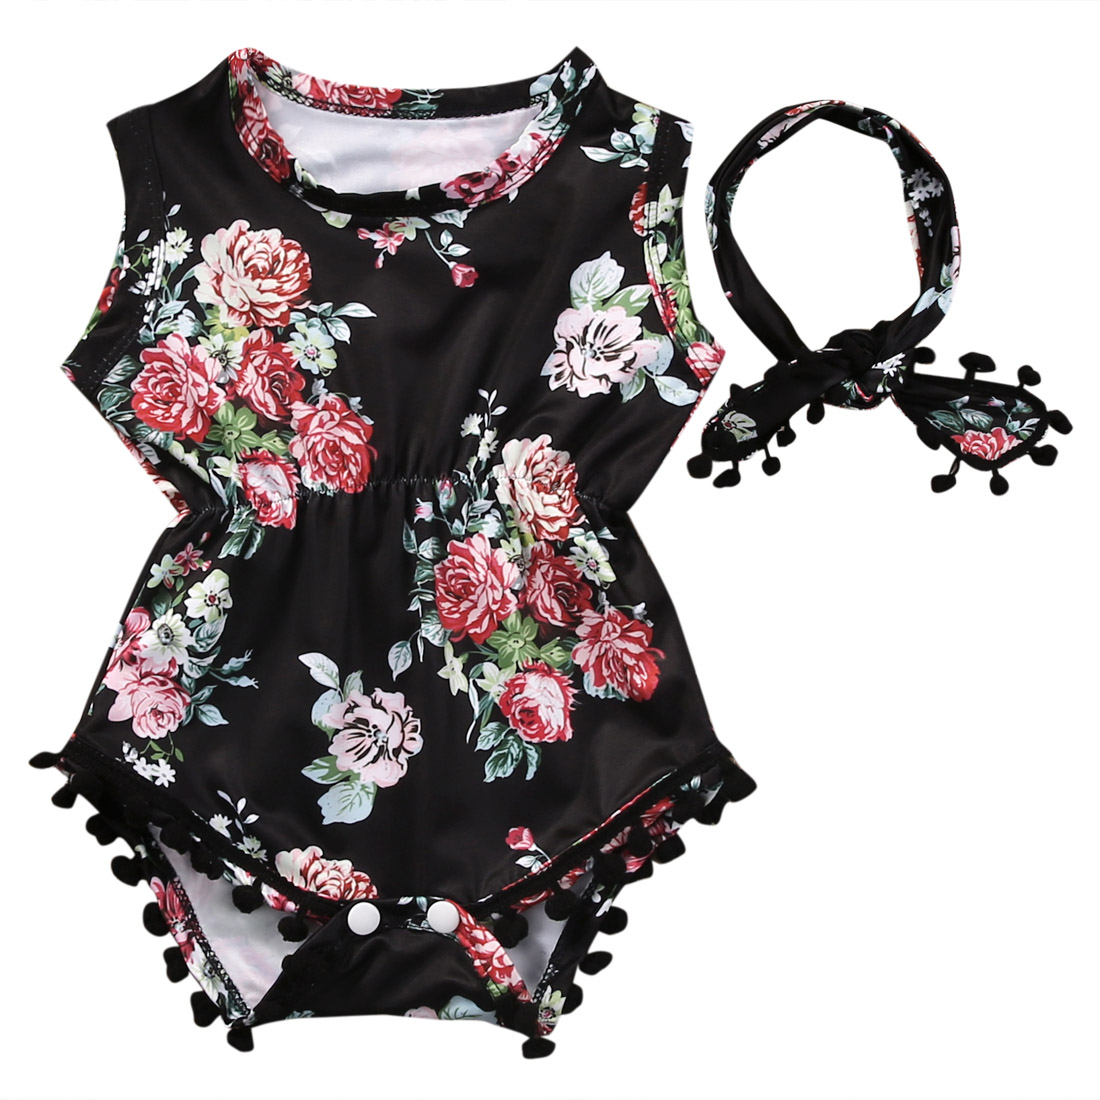 2d0e5a10655 Detail Feedback Questions about Adorable Floral Baby Girls Romper One  pieces Sunsuit Outfit Clothes on Aliexpress.com